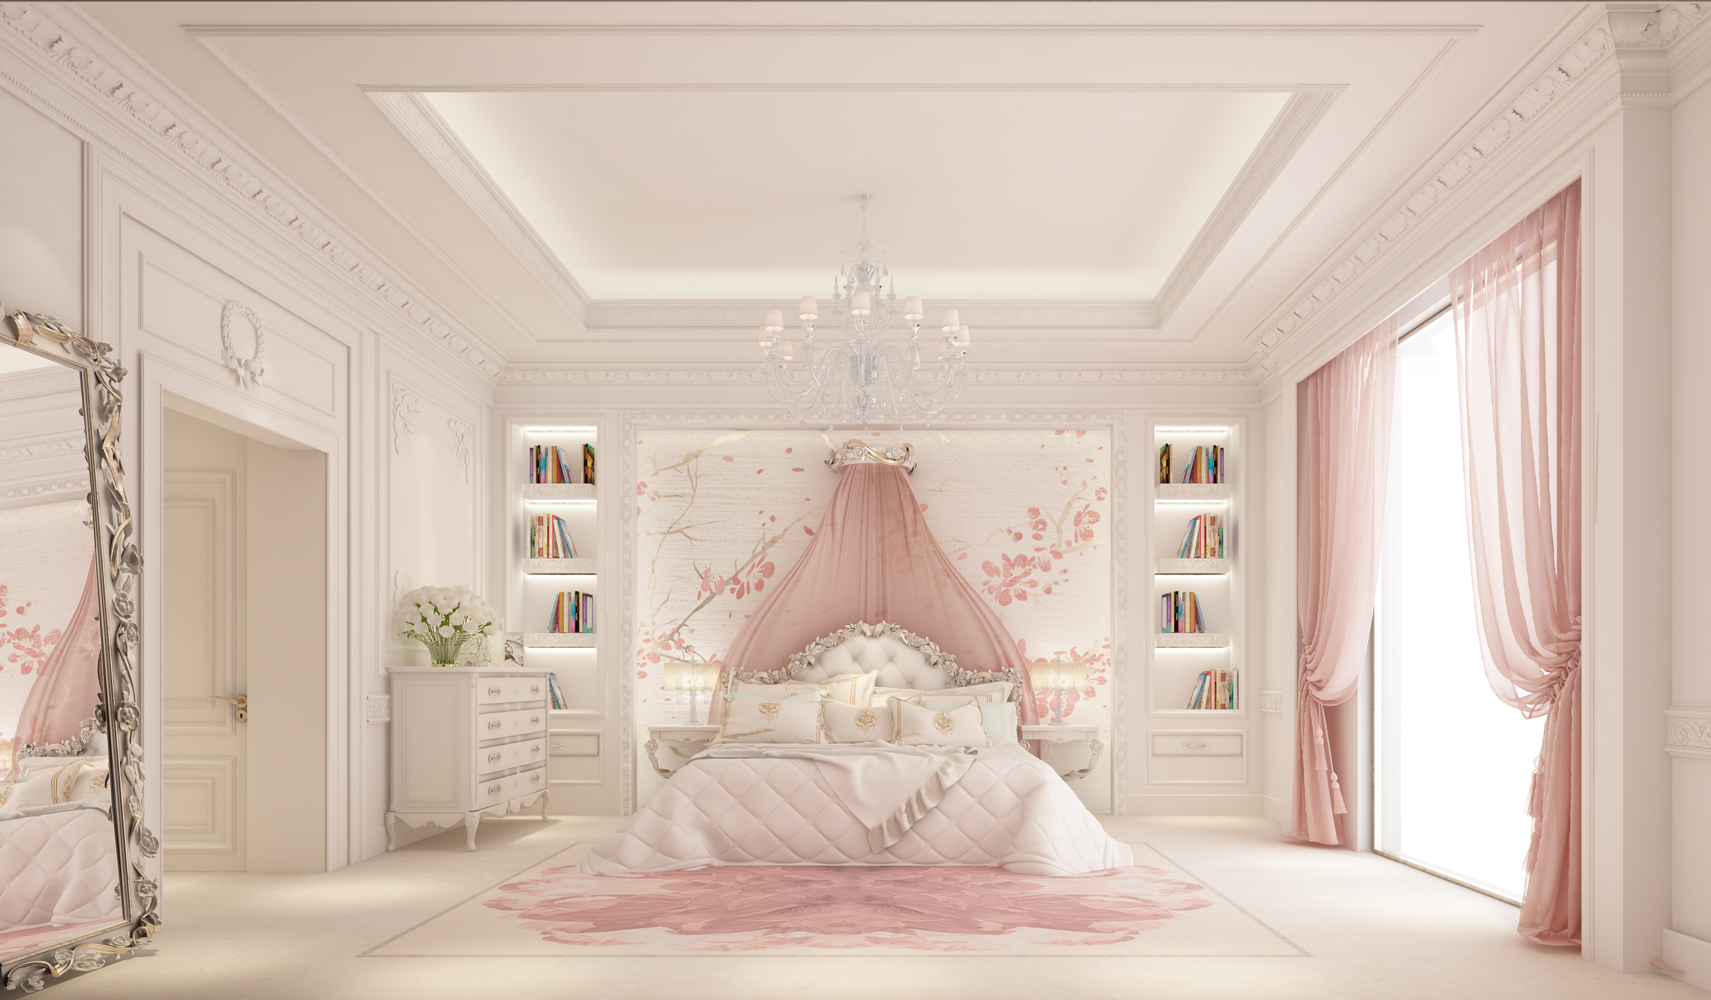 1000 images about bedroom on pinterest for Bedroom designs dubai